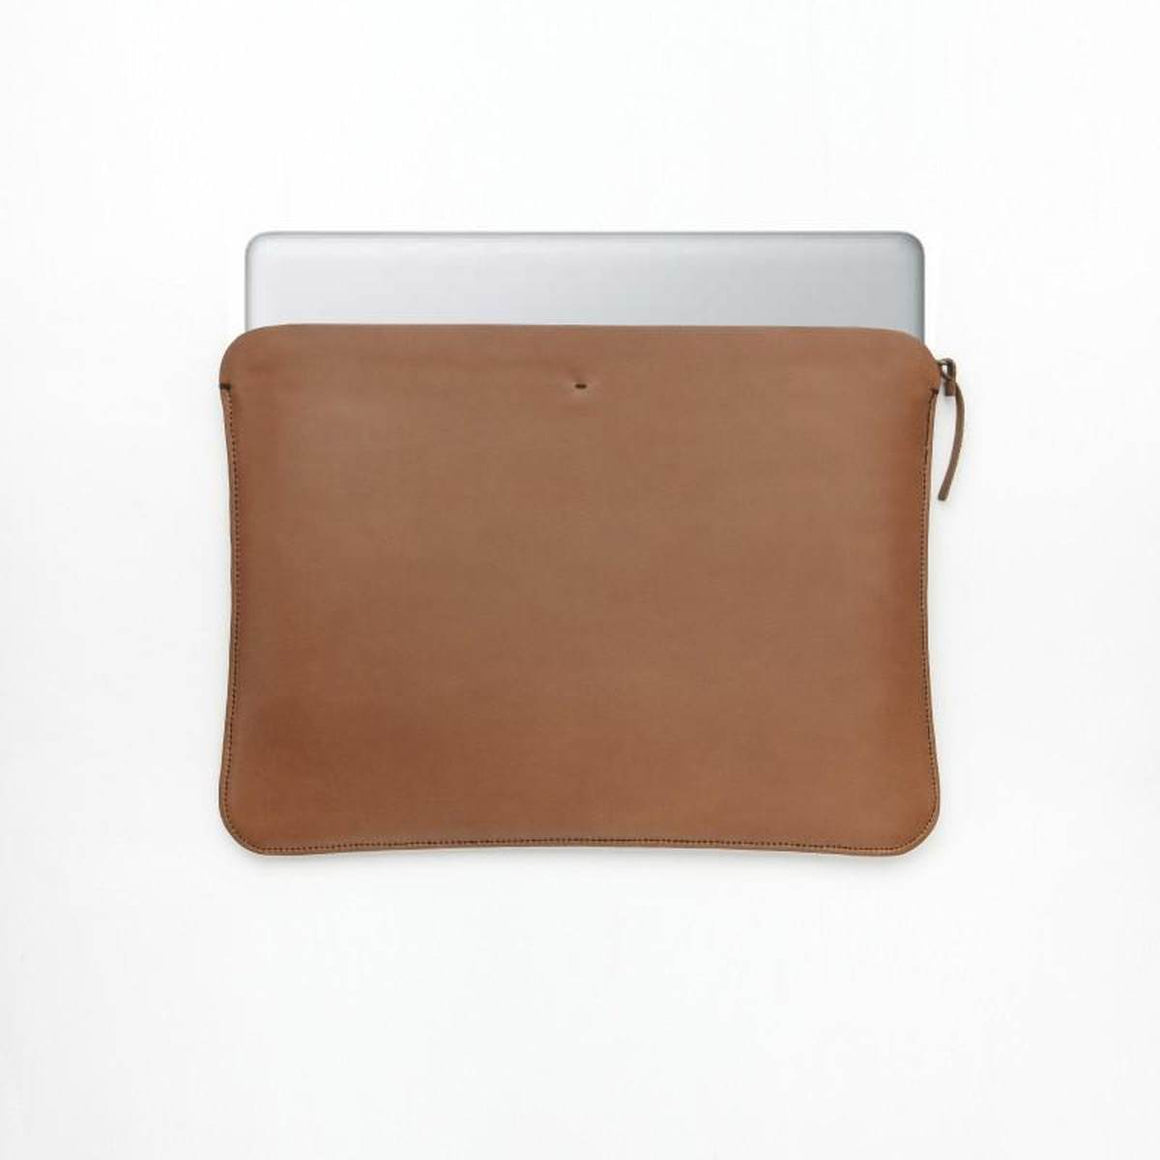 Laptop Case | Softcase 13"